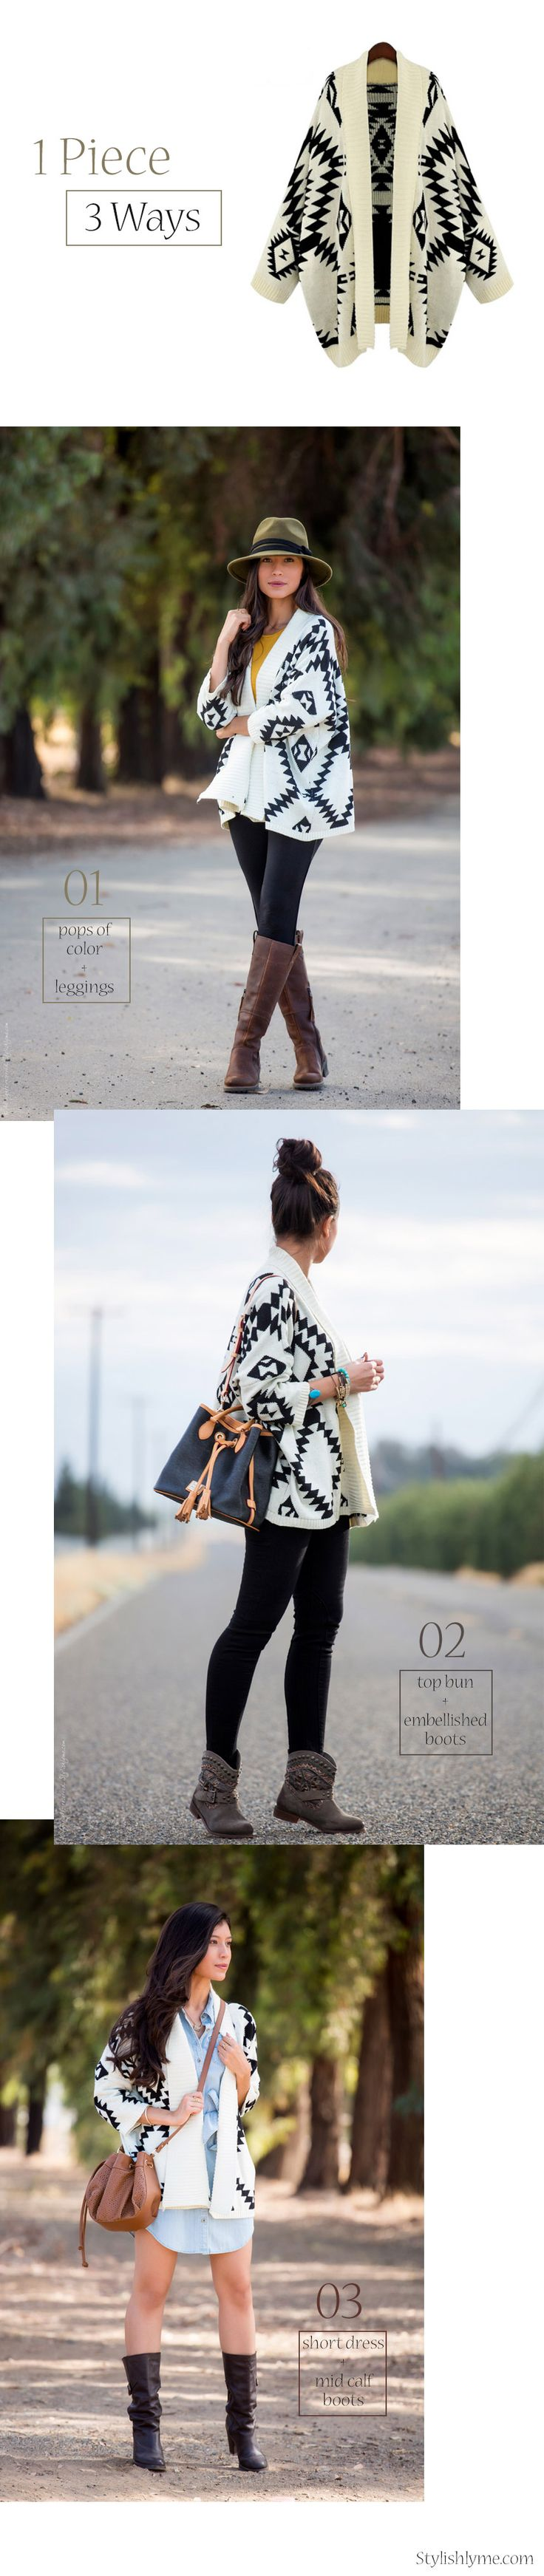 1 Piece 3 Outfits:  Aztec Print Cardigan - Visit Stylishlyme.com for more outfit inspiration and style tips